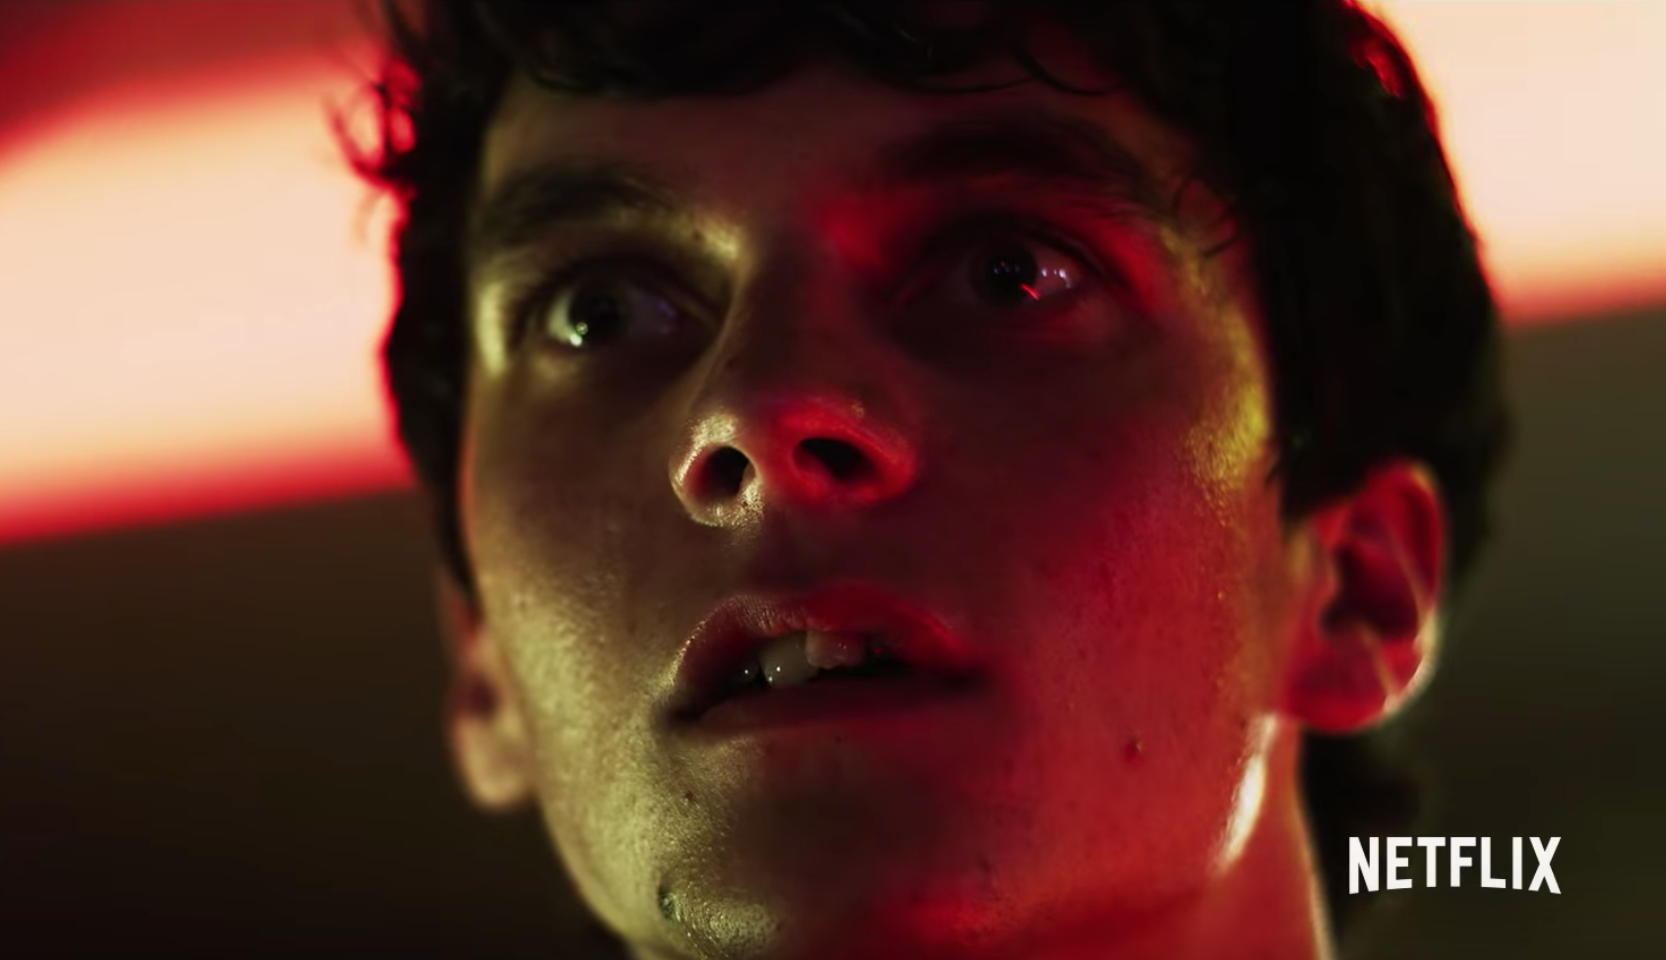 The New Black Mirror Film 'Bandersnatch' Is Out Soon